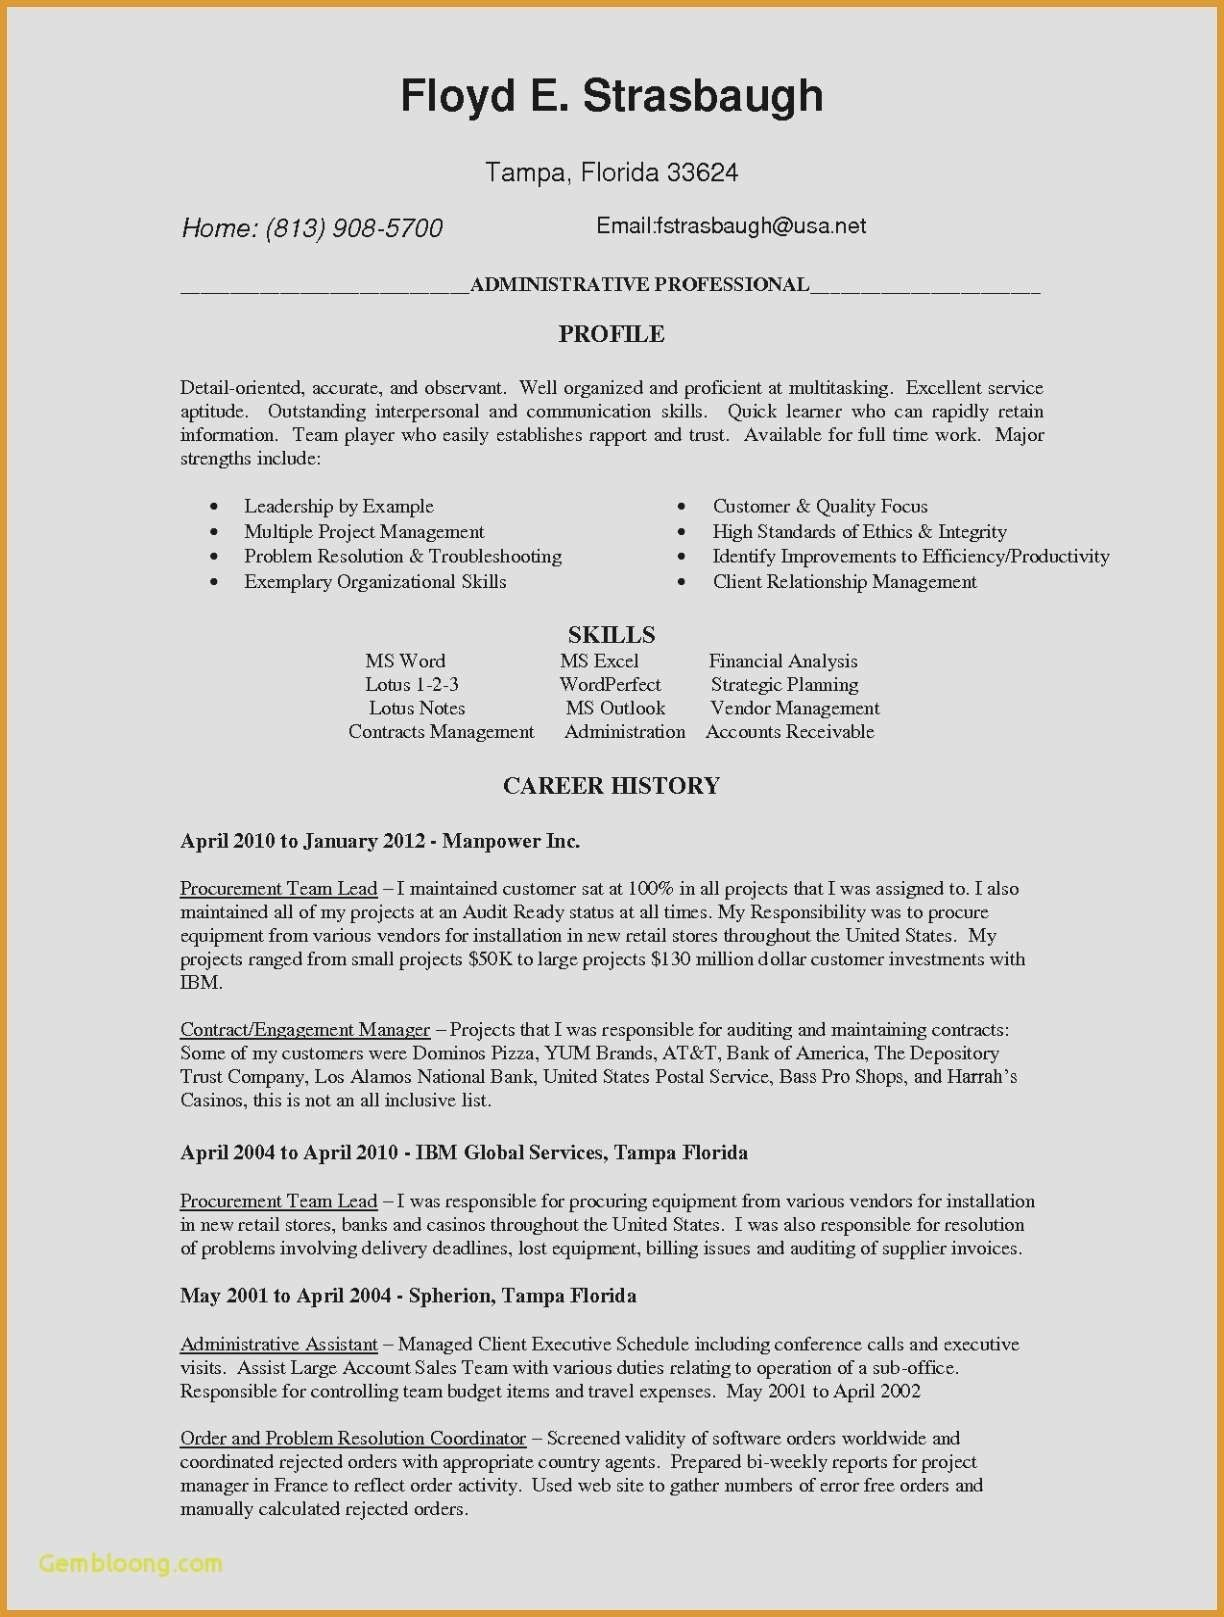 Pin by Waldwert Site on Resume Formats | Cover letter for resume ...